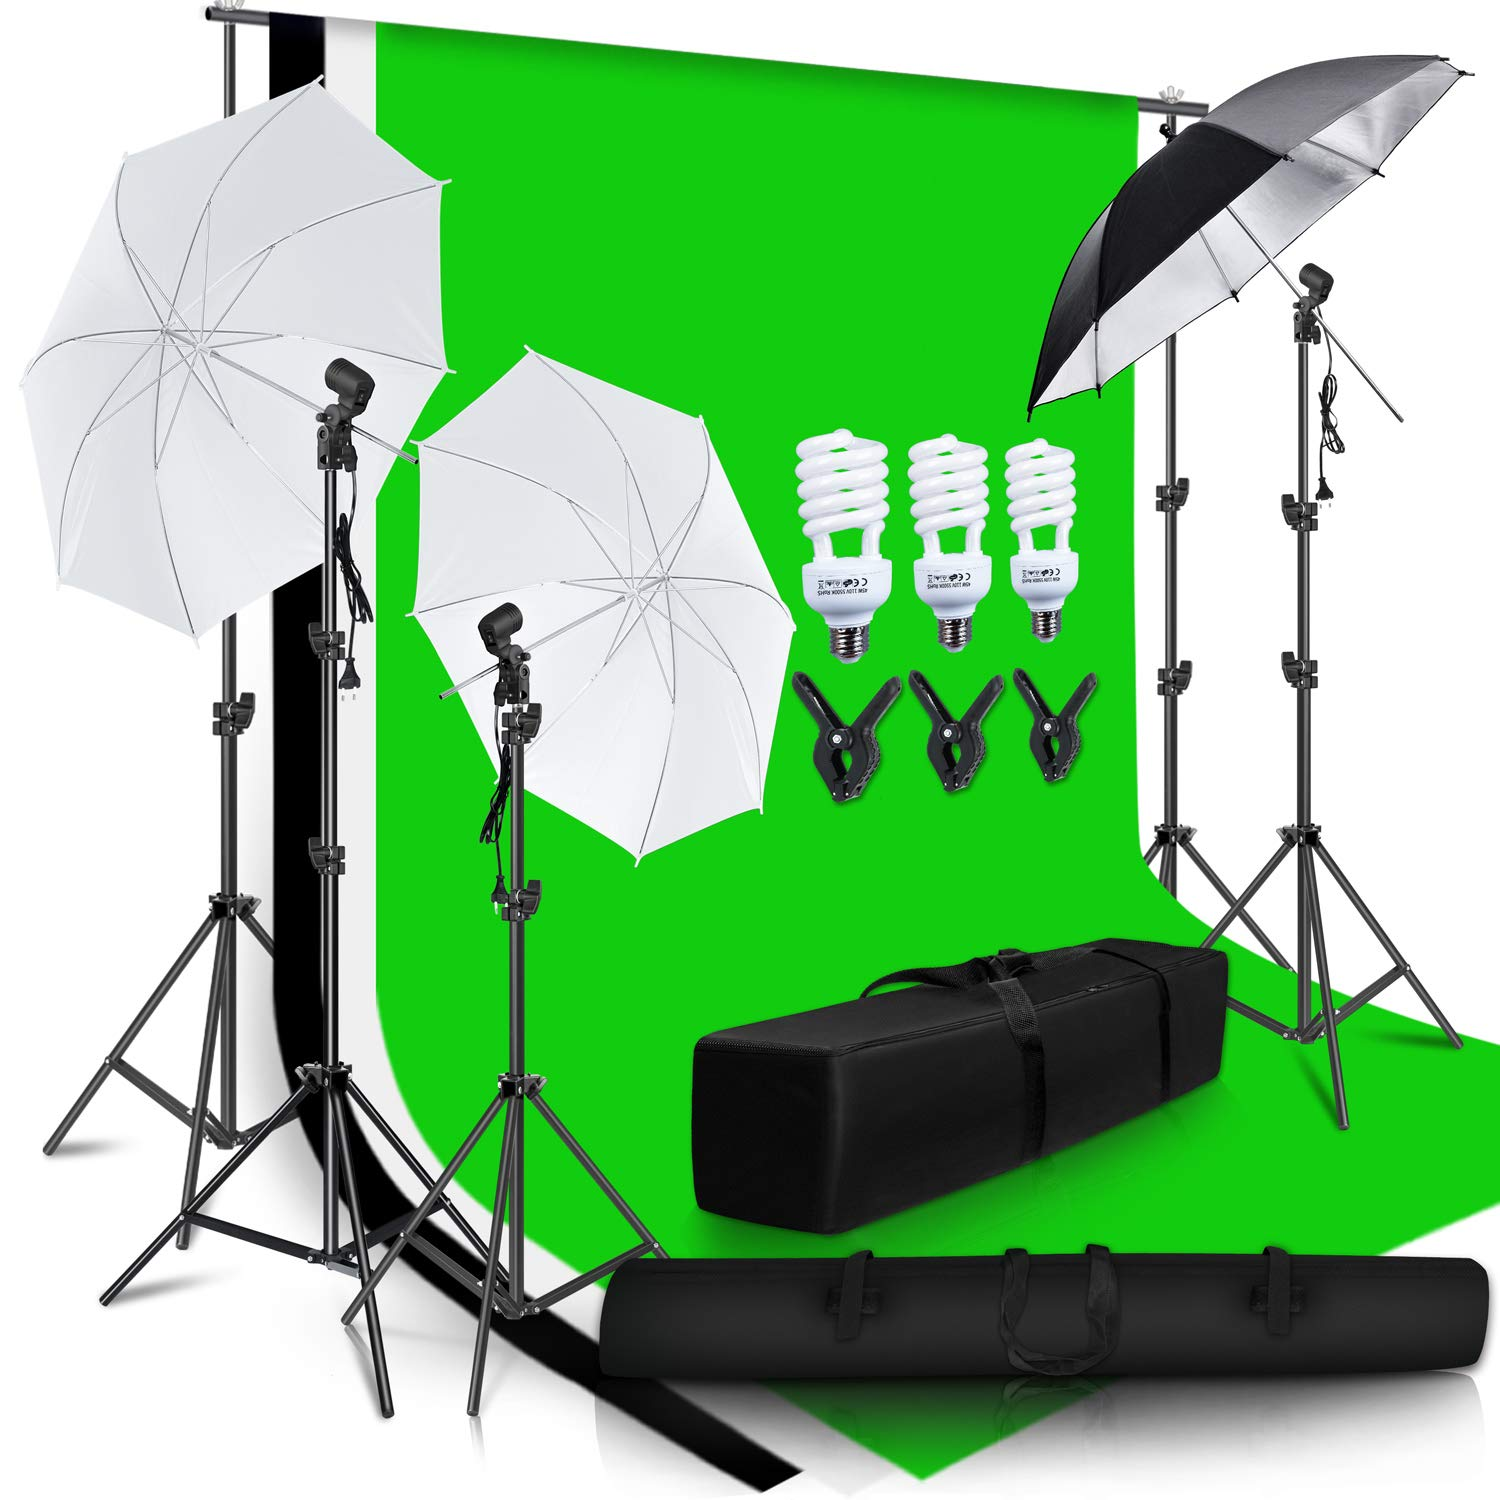 SH Photo Studio Double Off Camera Speedlight Flash Umbrella Kit, Photography Tripod Brackets for Photography Photo Video Studio Lighting Flash Translucent White Soft Umbrella